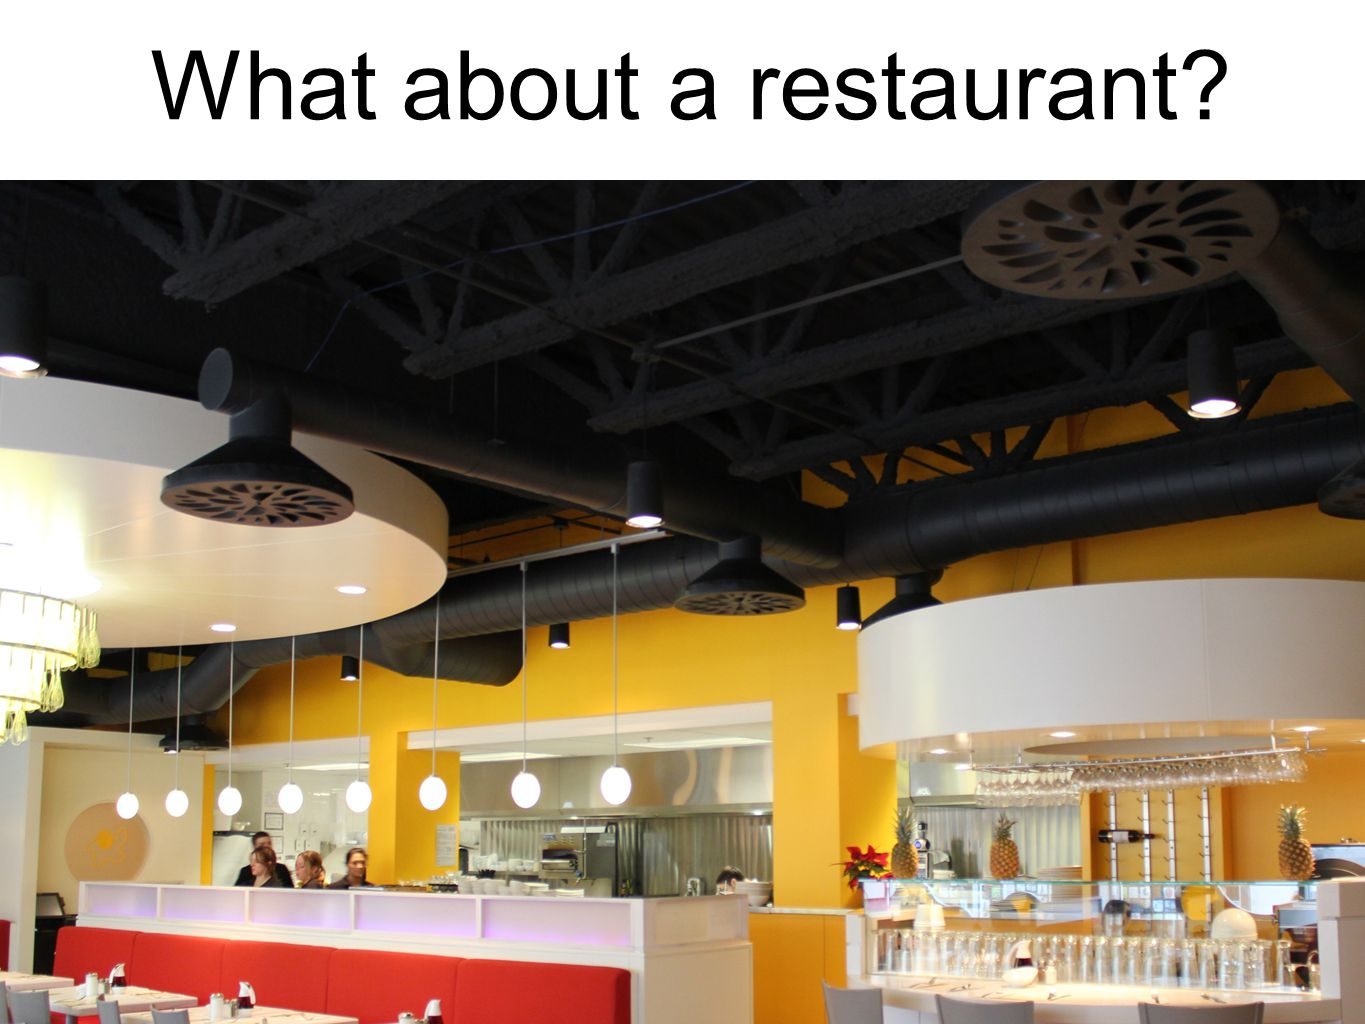 What about a restaurant